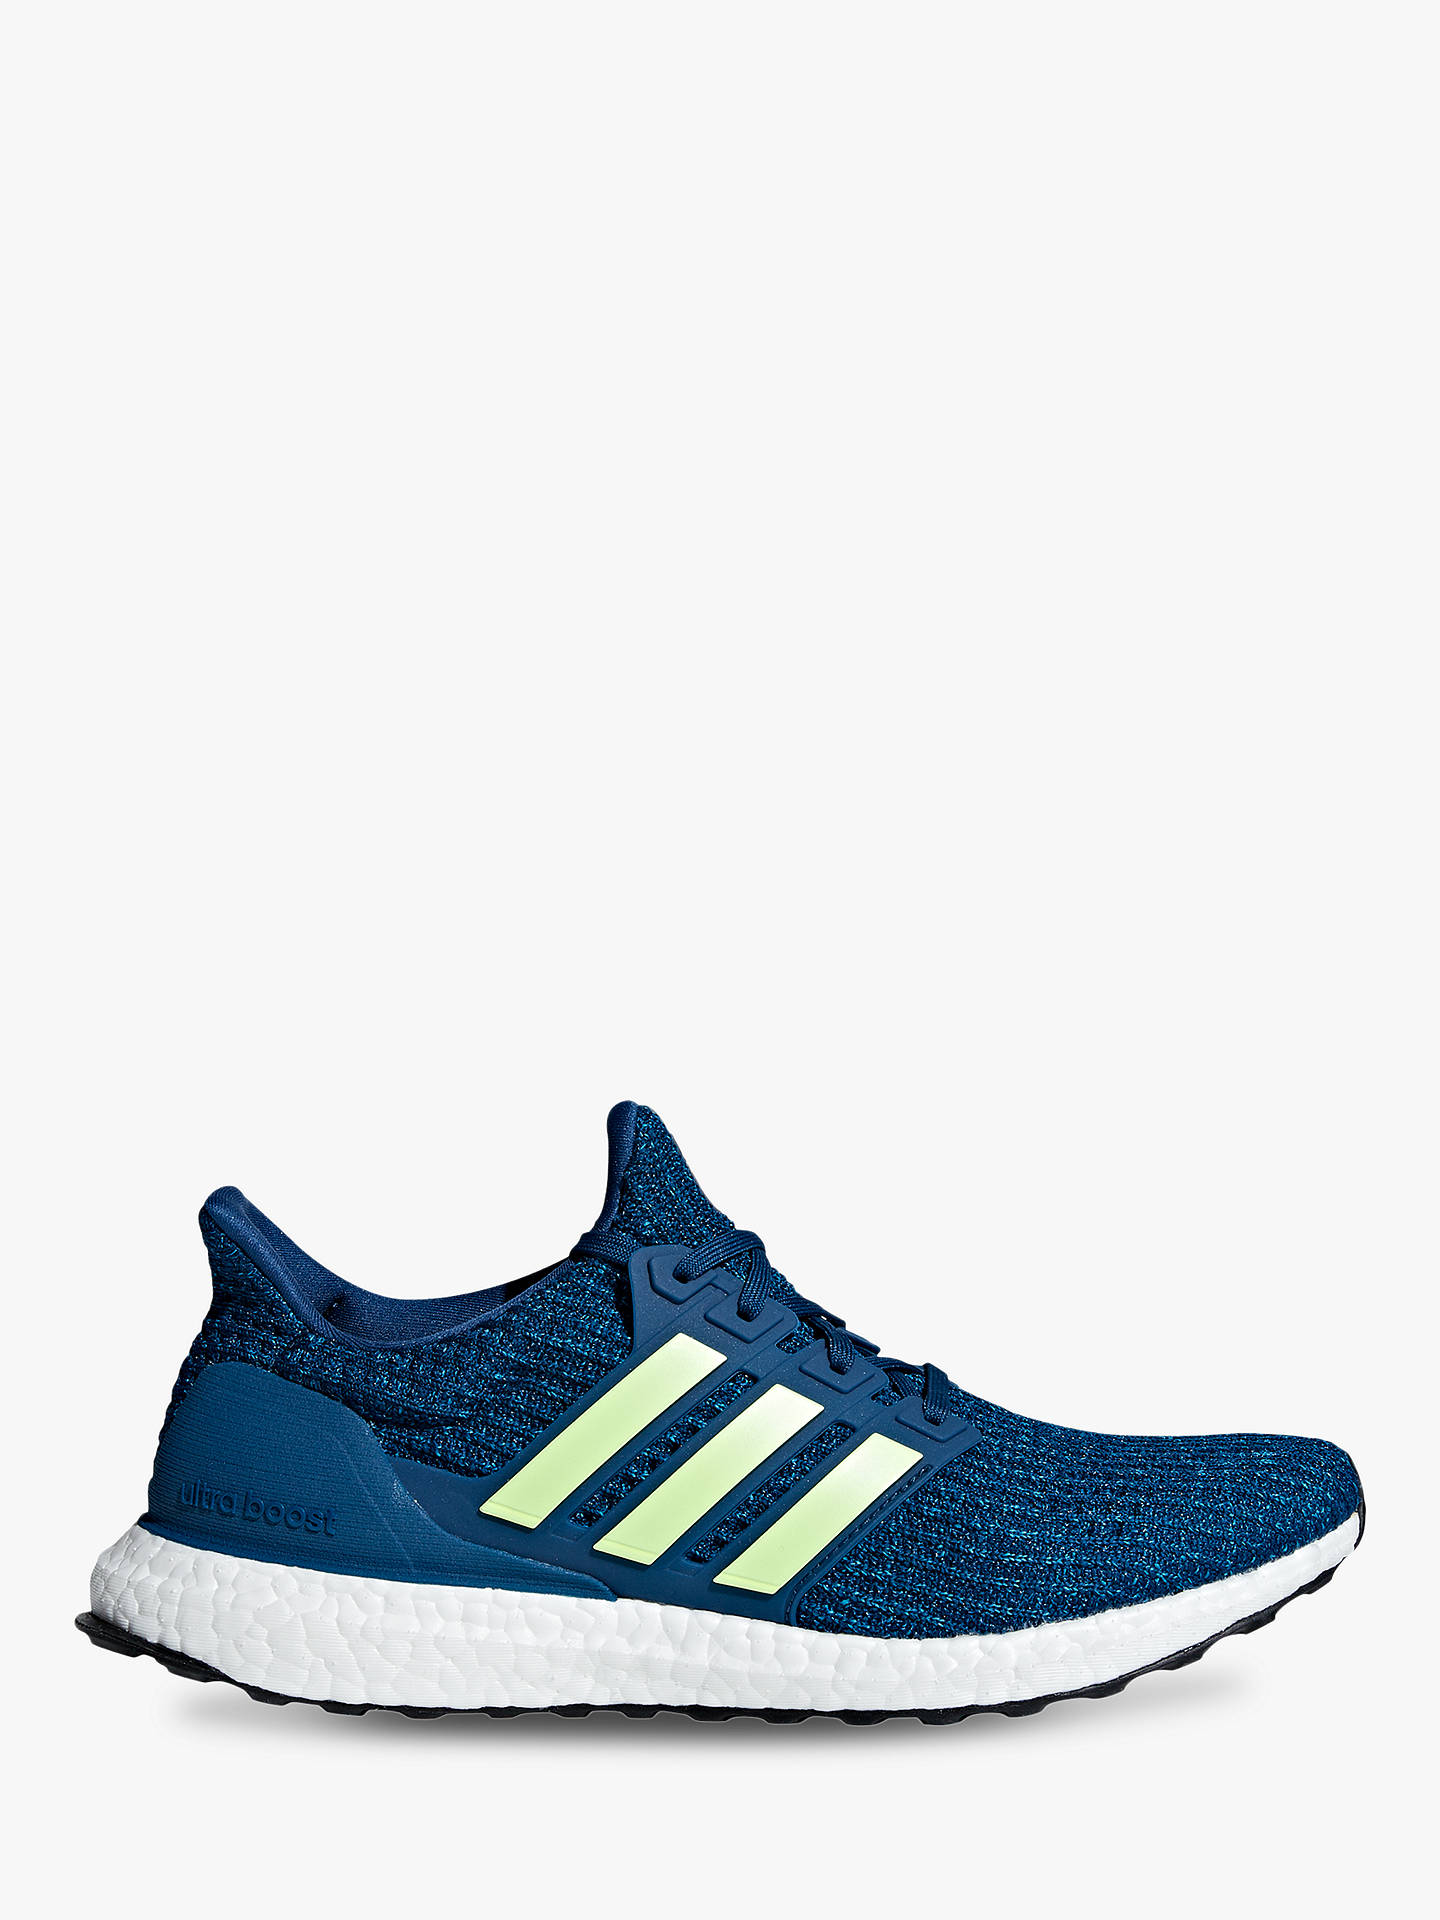 9cef8e590c32 adidas UltraBOOST Men s Running Shoes at John Lewis   Partners